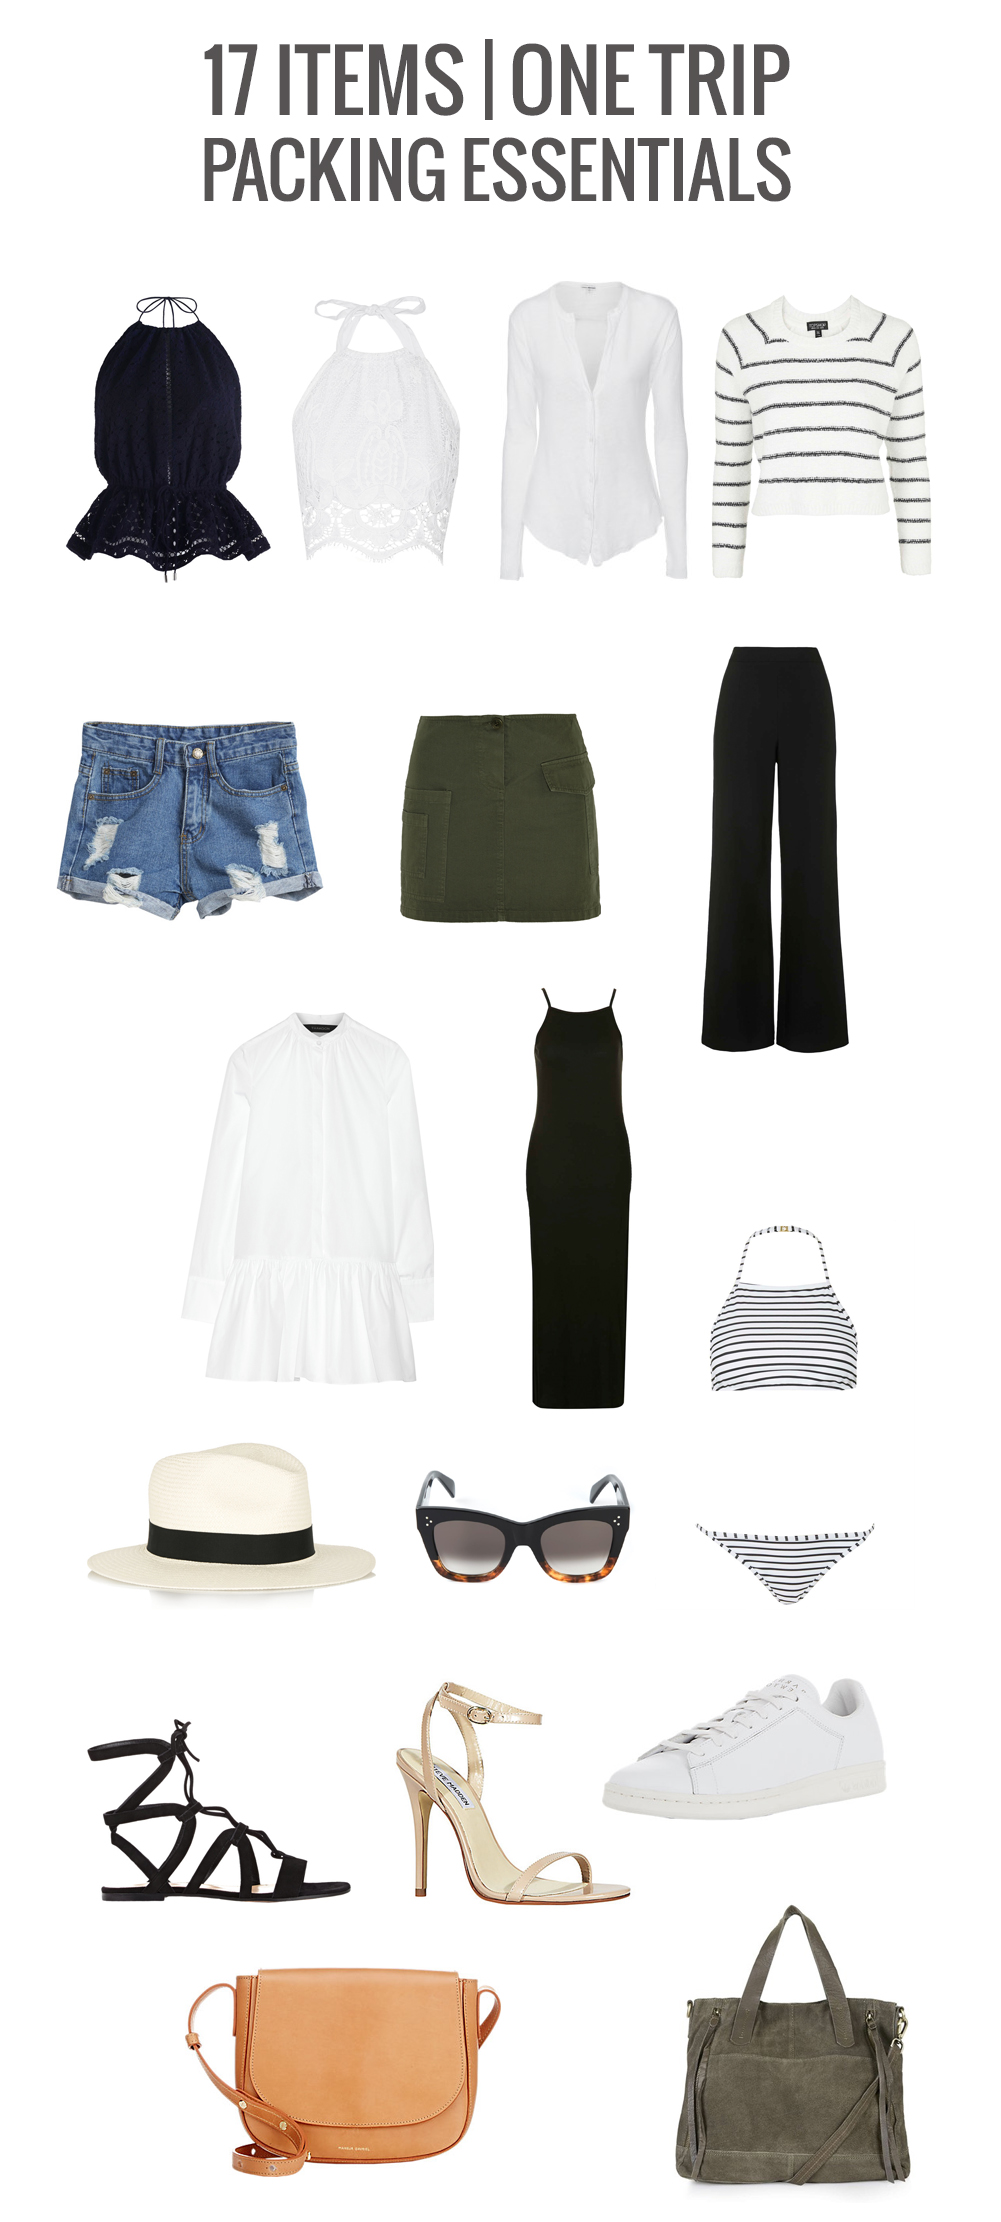 WHAT TO PACK FOR A VACATION PINTEREST MINIMAL TRENDY MARIANNA HEWITT TRAVEL BLOG